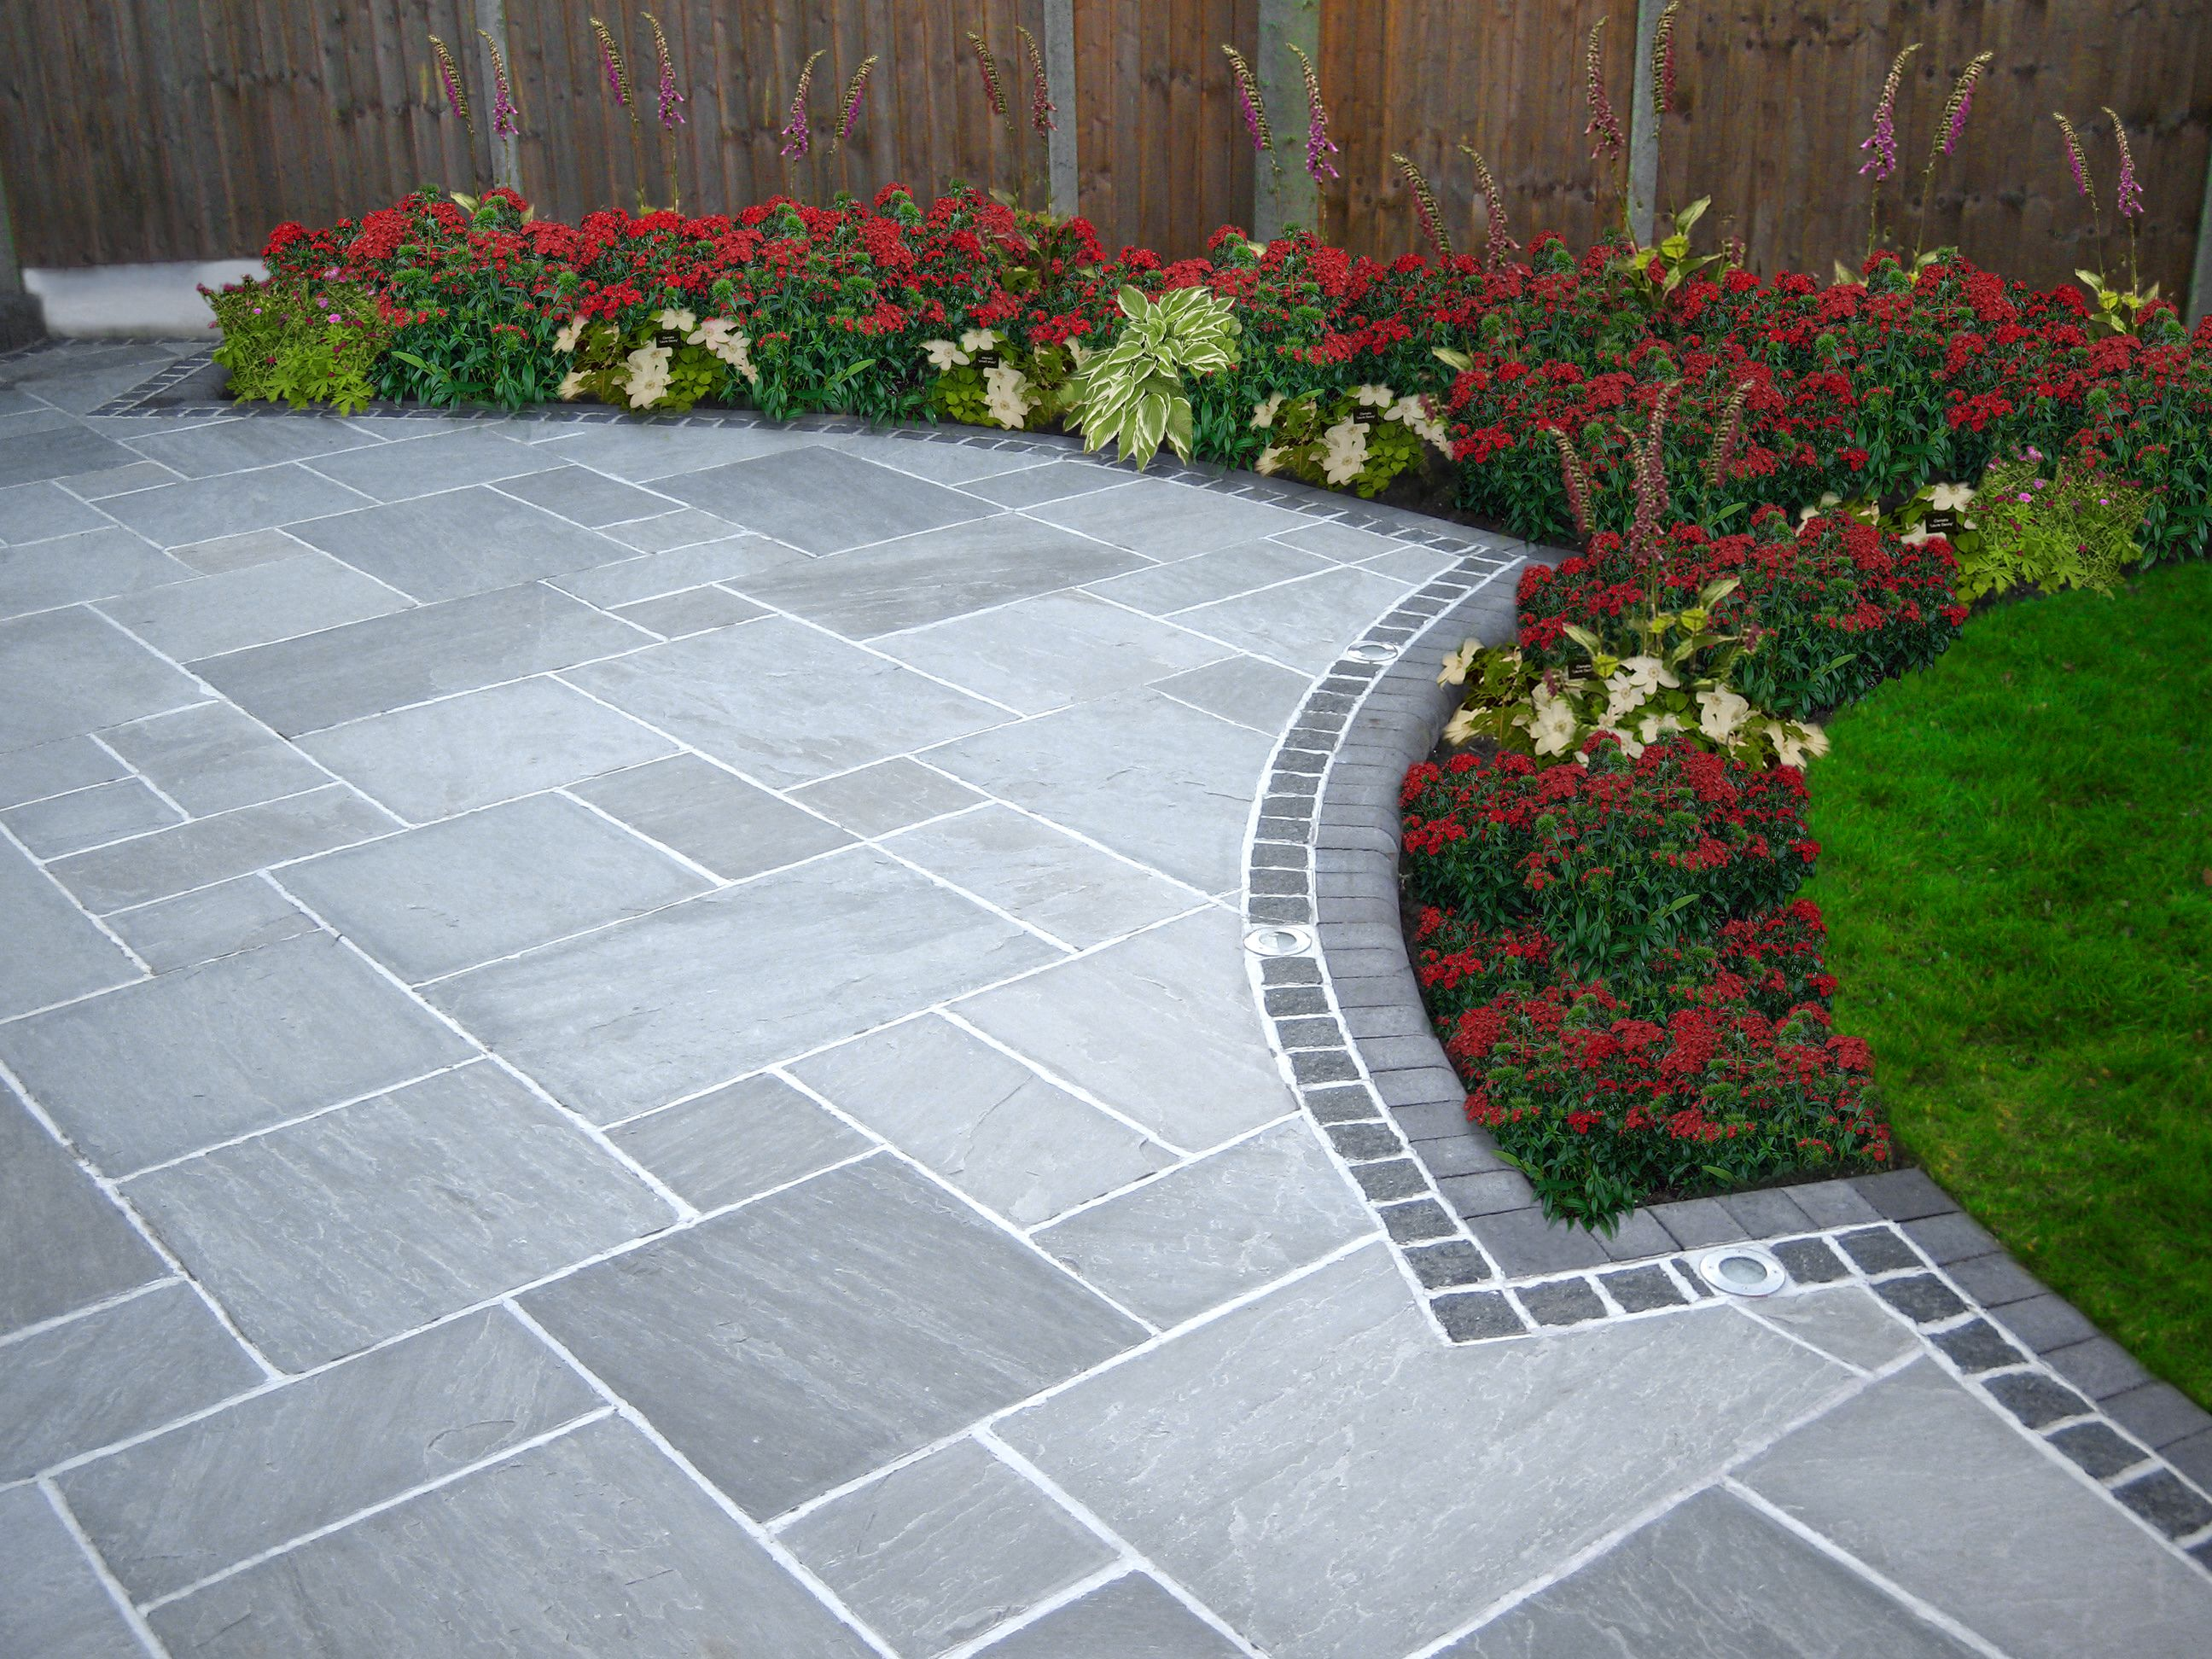 Stone Grey Sandstone Paving Is Part Of The AWBS Exclusive Indians Sandstone  Paving Range And Features